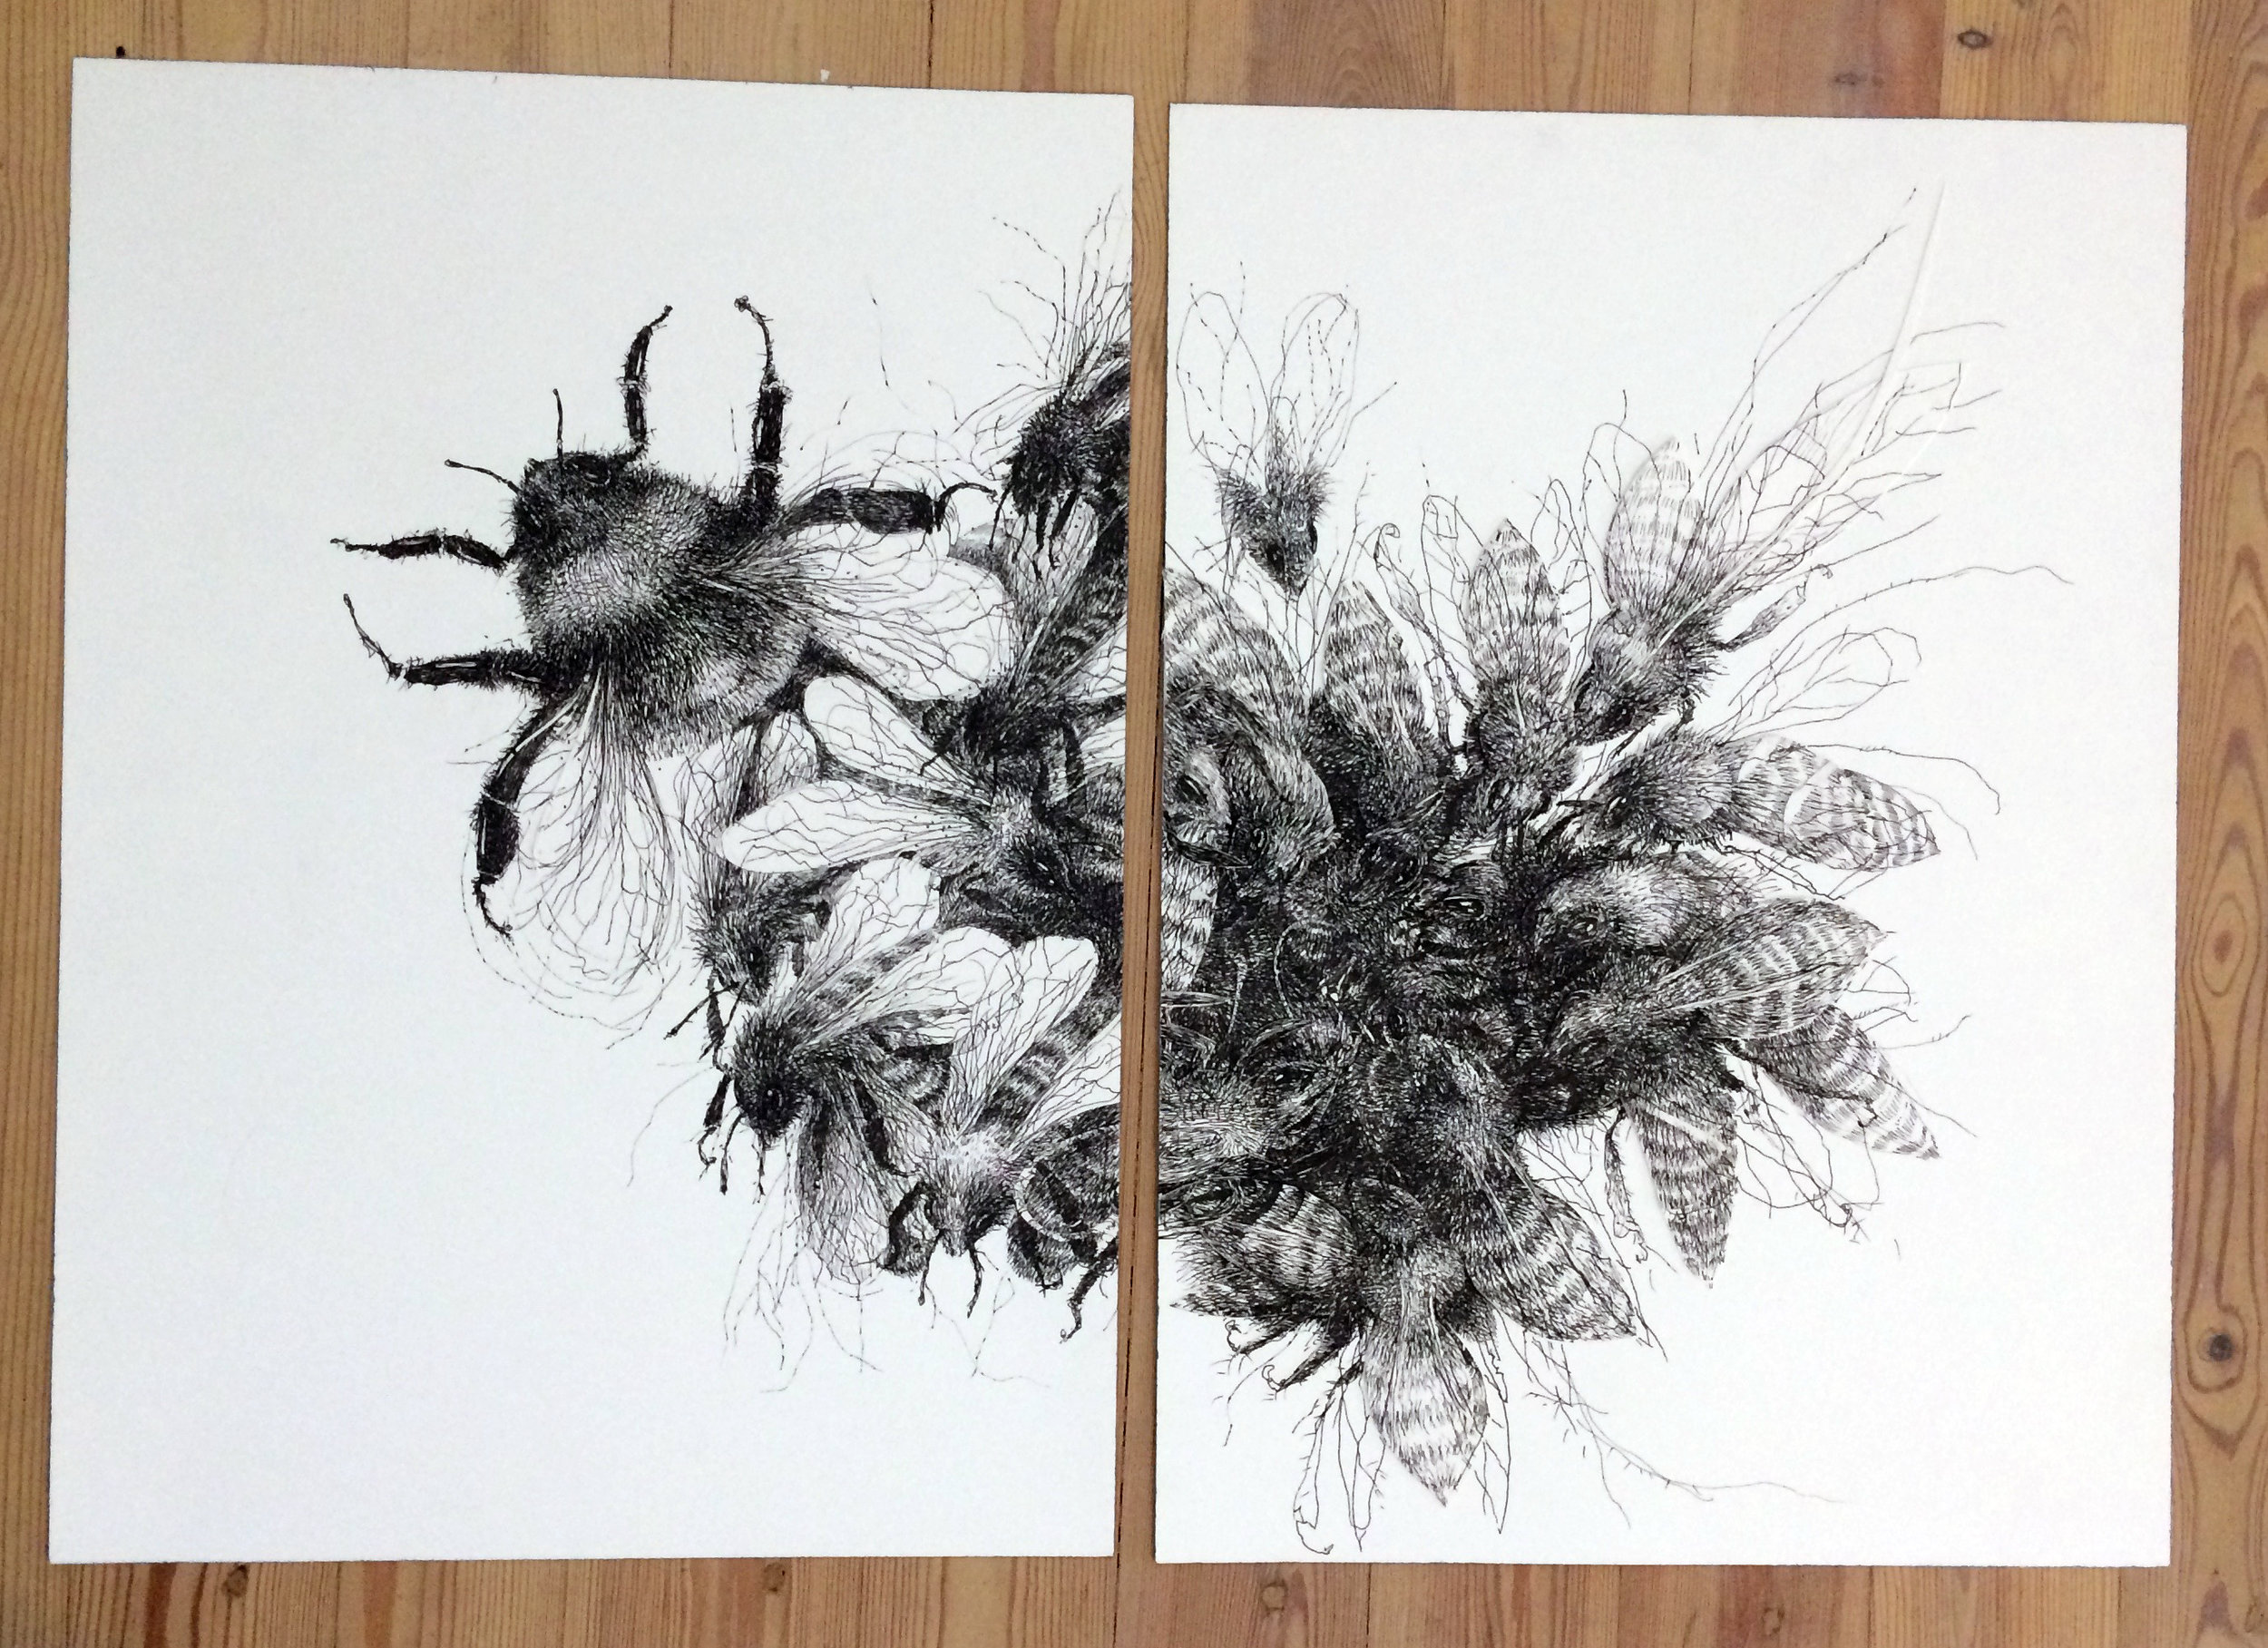 I draw several drawings of bees (this one with one bumblebee also) last year and just suddenly realised they all have new home's now and I can't show them in a show anymore, which was my original plan. I guess it's a good thing, but yeah...well, I do have some bad photos of them.